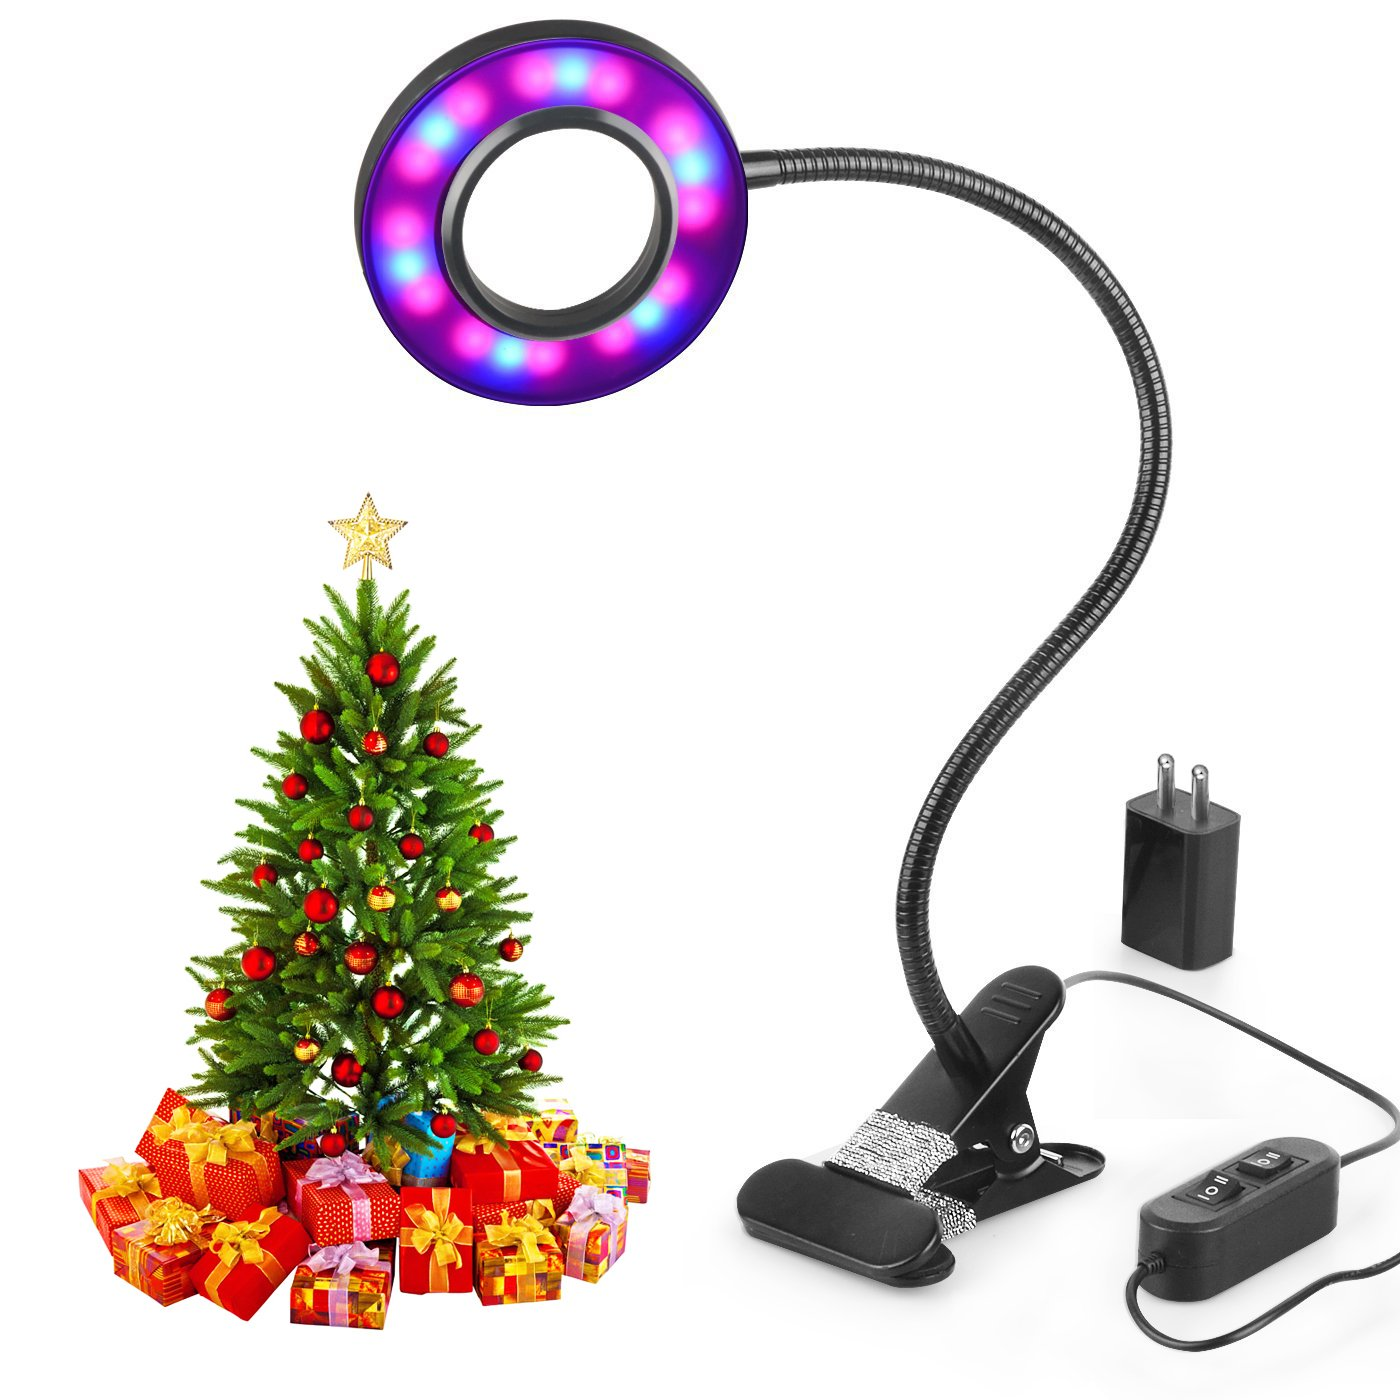 LED Grow Light,Aokey Led Plant Light 10w Grow Lamp Adjustable 3 Modes&2-Level Dimmable Clip Desk Lamp with 360 ° Flexible Gooseneck for Office, Home, Indoor Garden Greenhouse Hydroponic Indoor Plants Veg and Flower